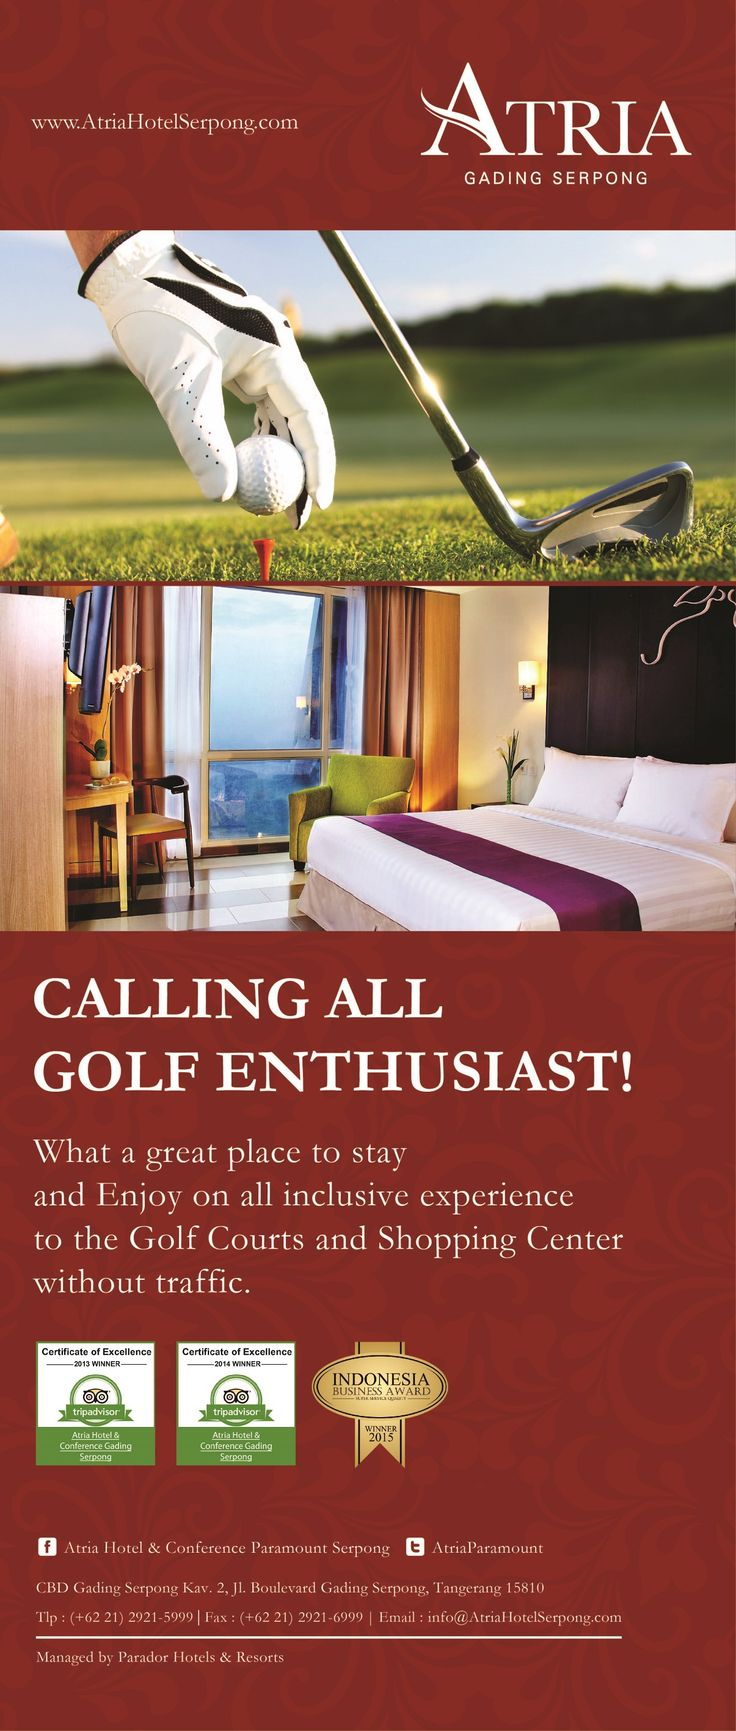 CALLING ALL GOLF ENTHUSIAST! What a great place to stay and enjoy on all inclusive experience to the Golf Courts and Shopping Center without traffic.